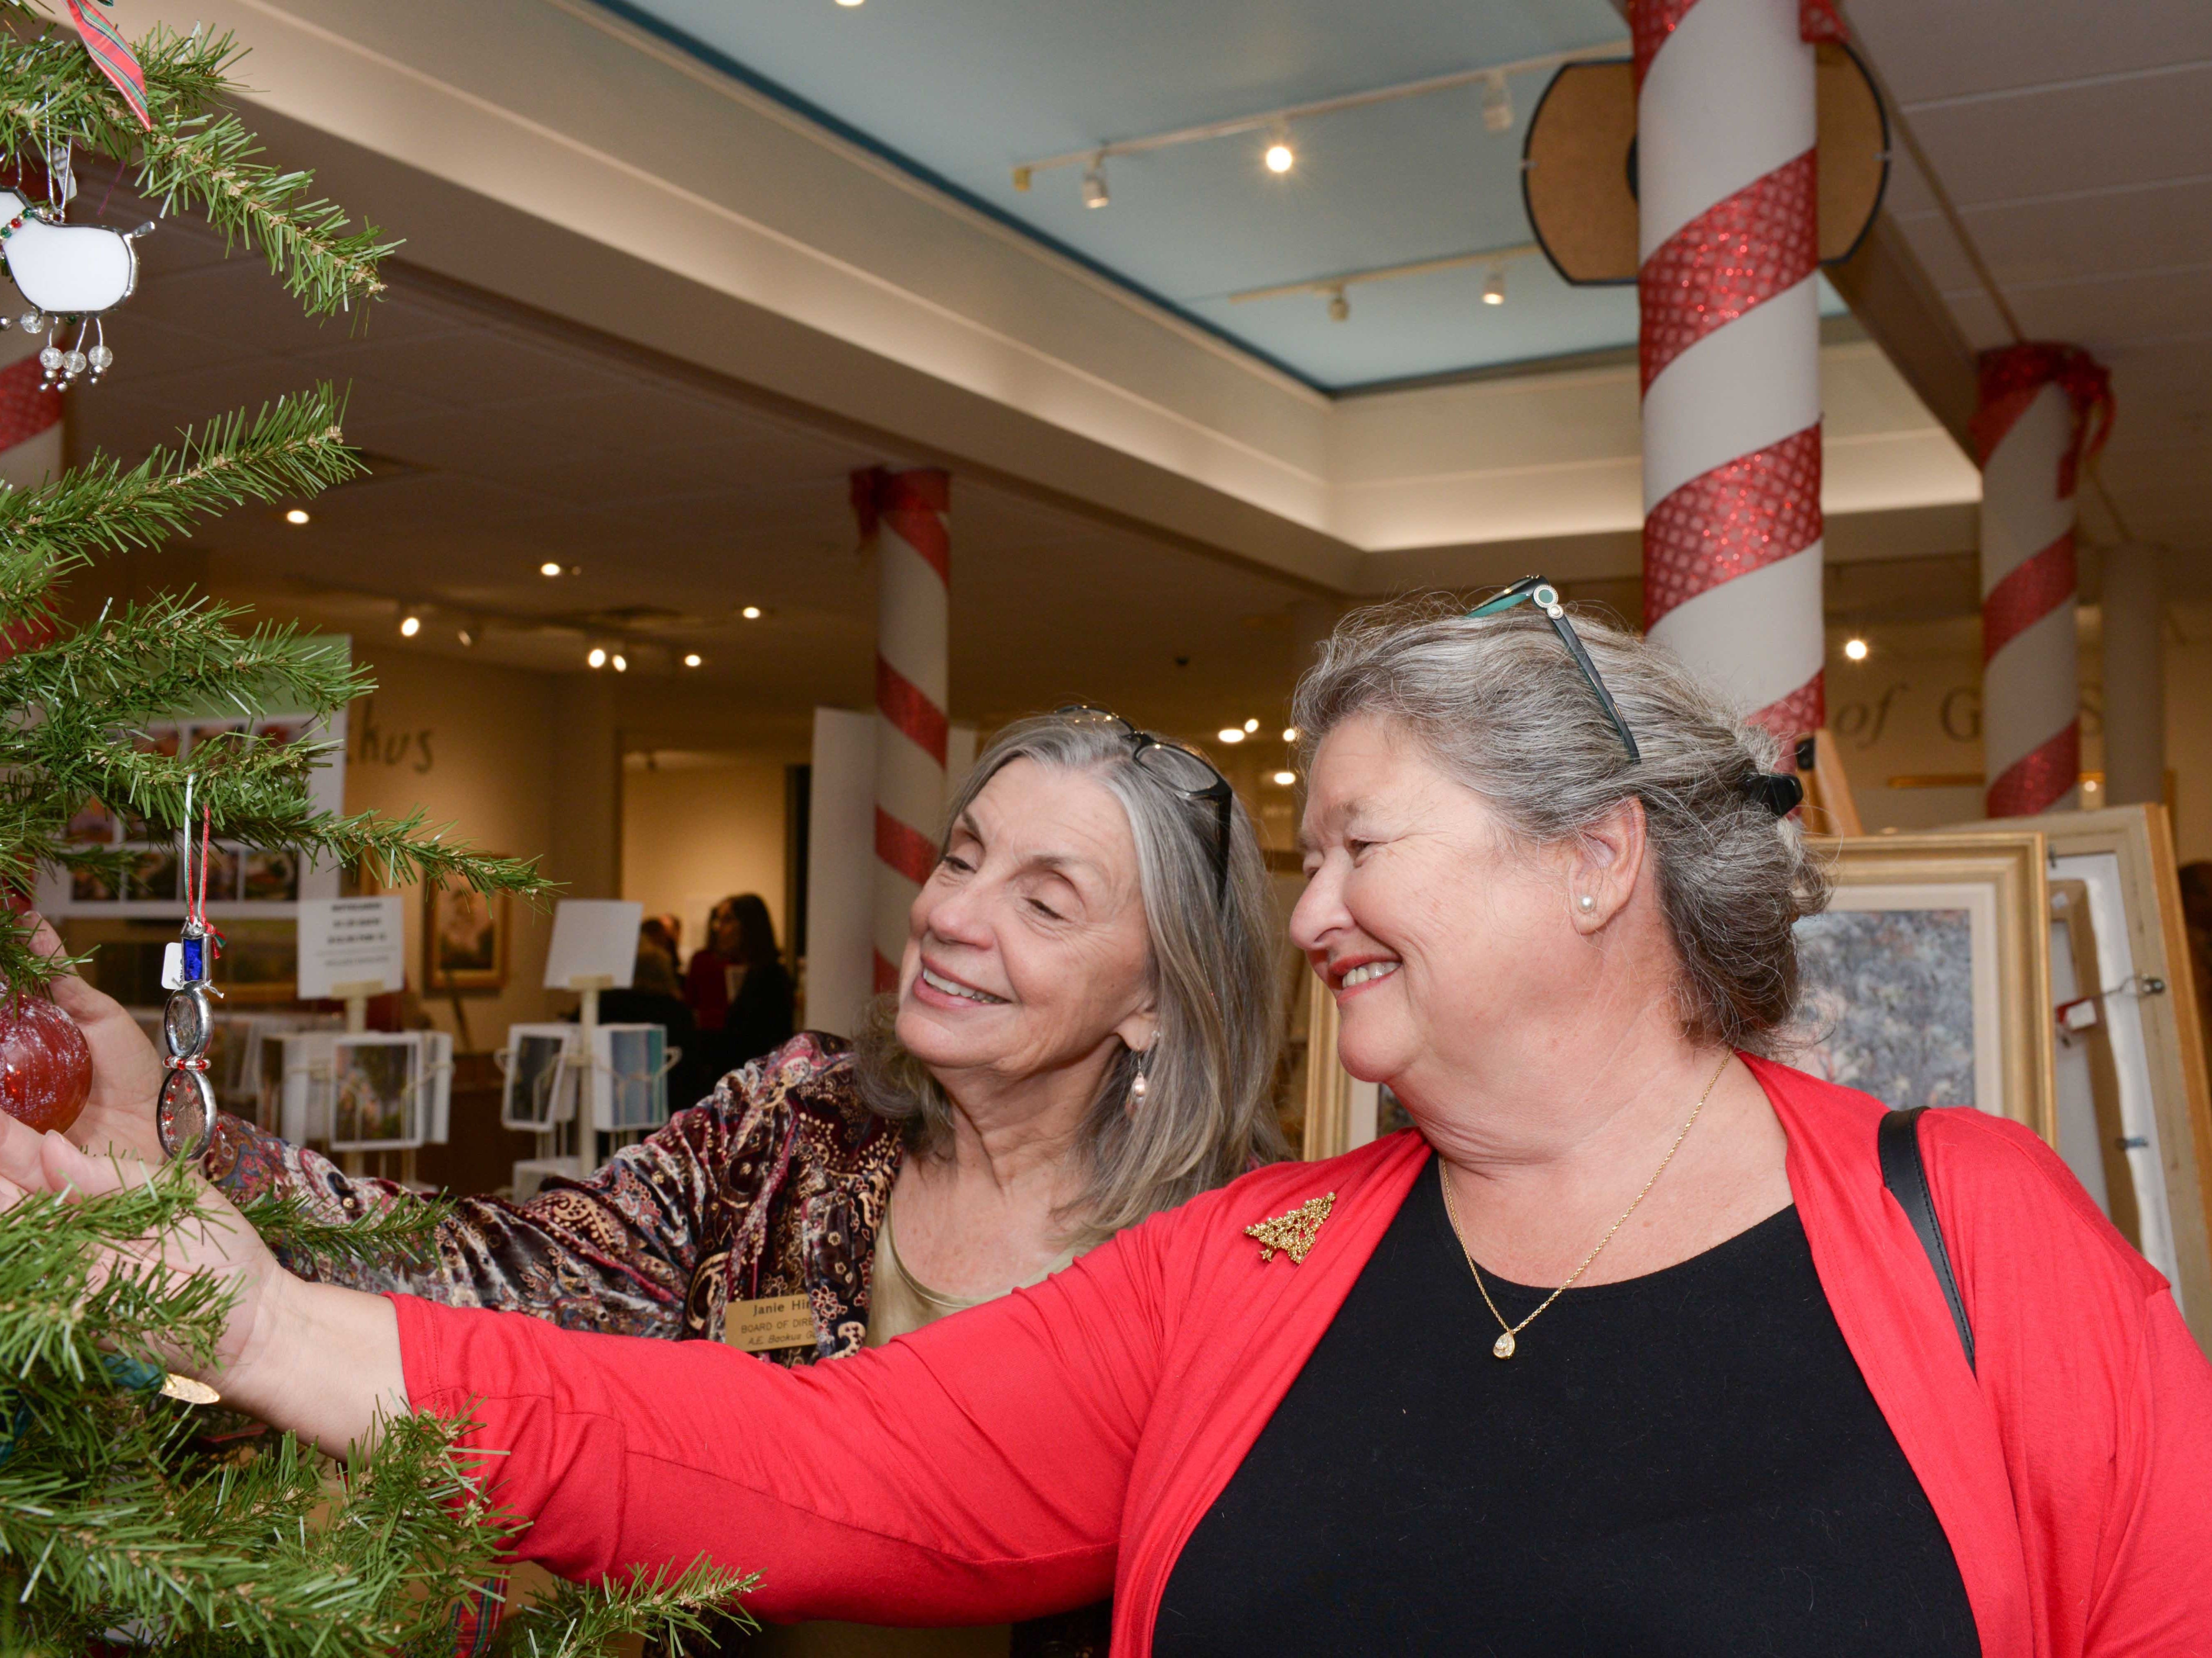 Board President Janie Hinkle, left, and Terry Shafer look at some Christmas tree ornaments at the A.E. Backus Museum in Fort Pierce.